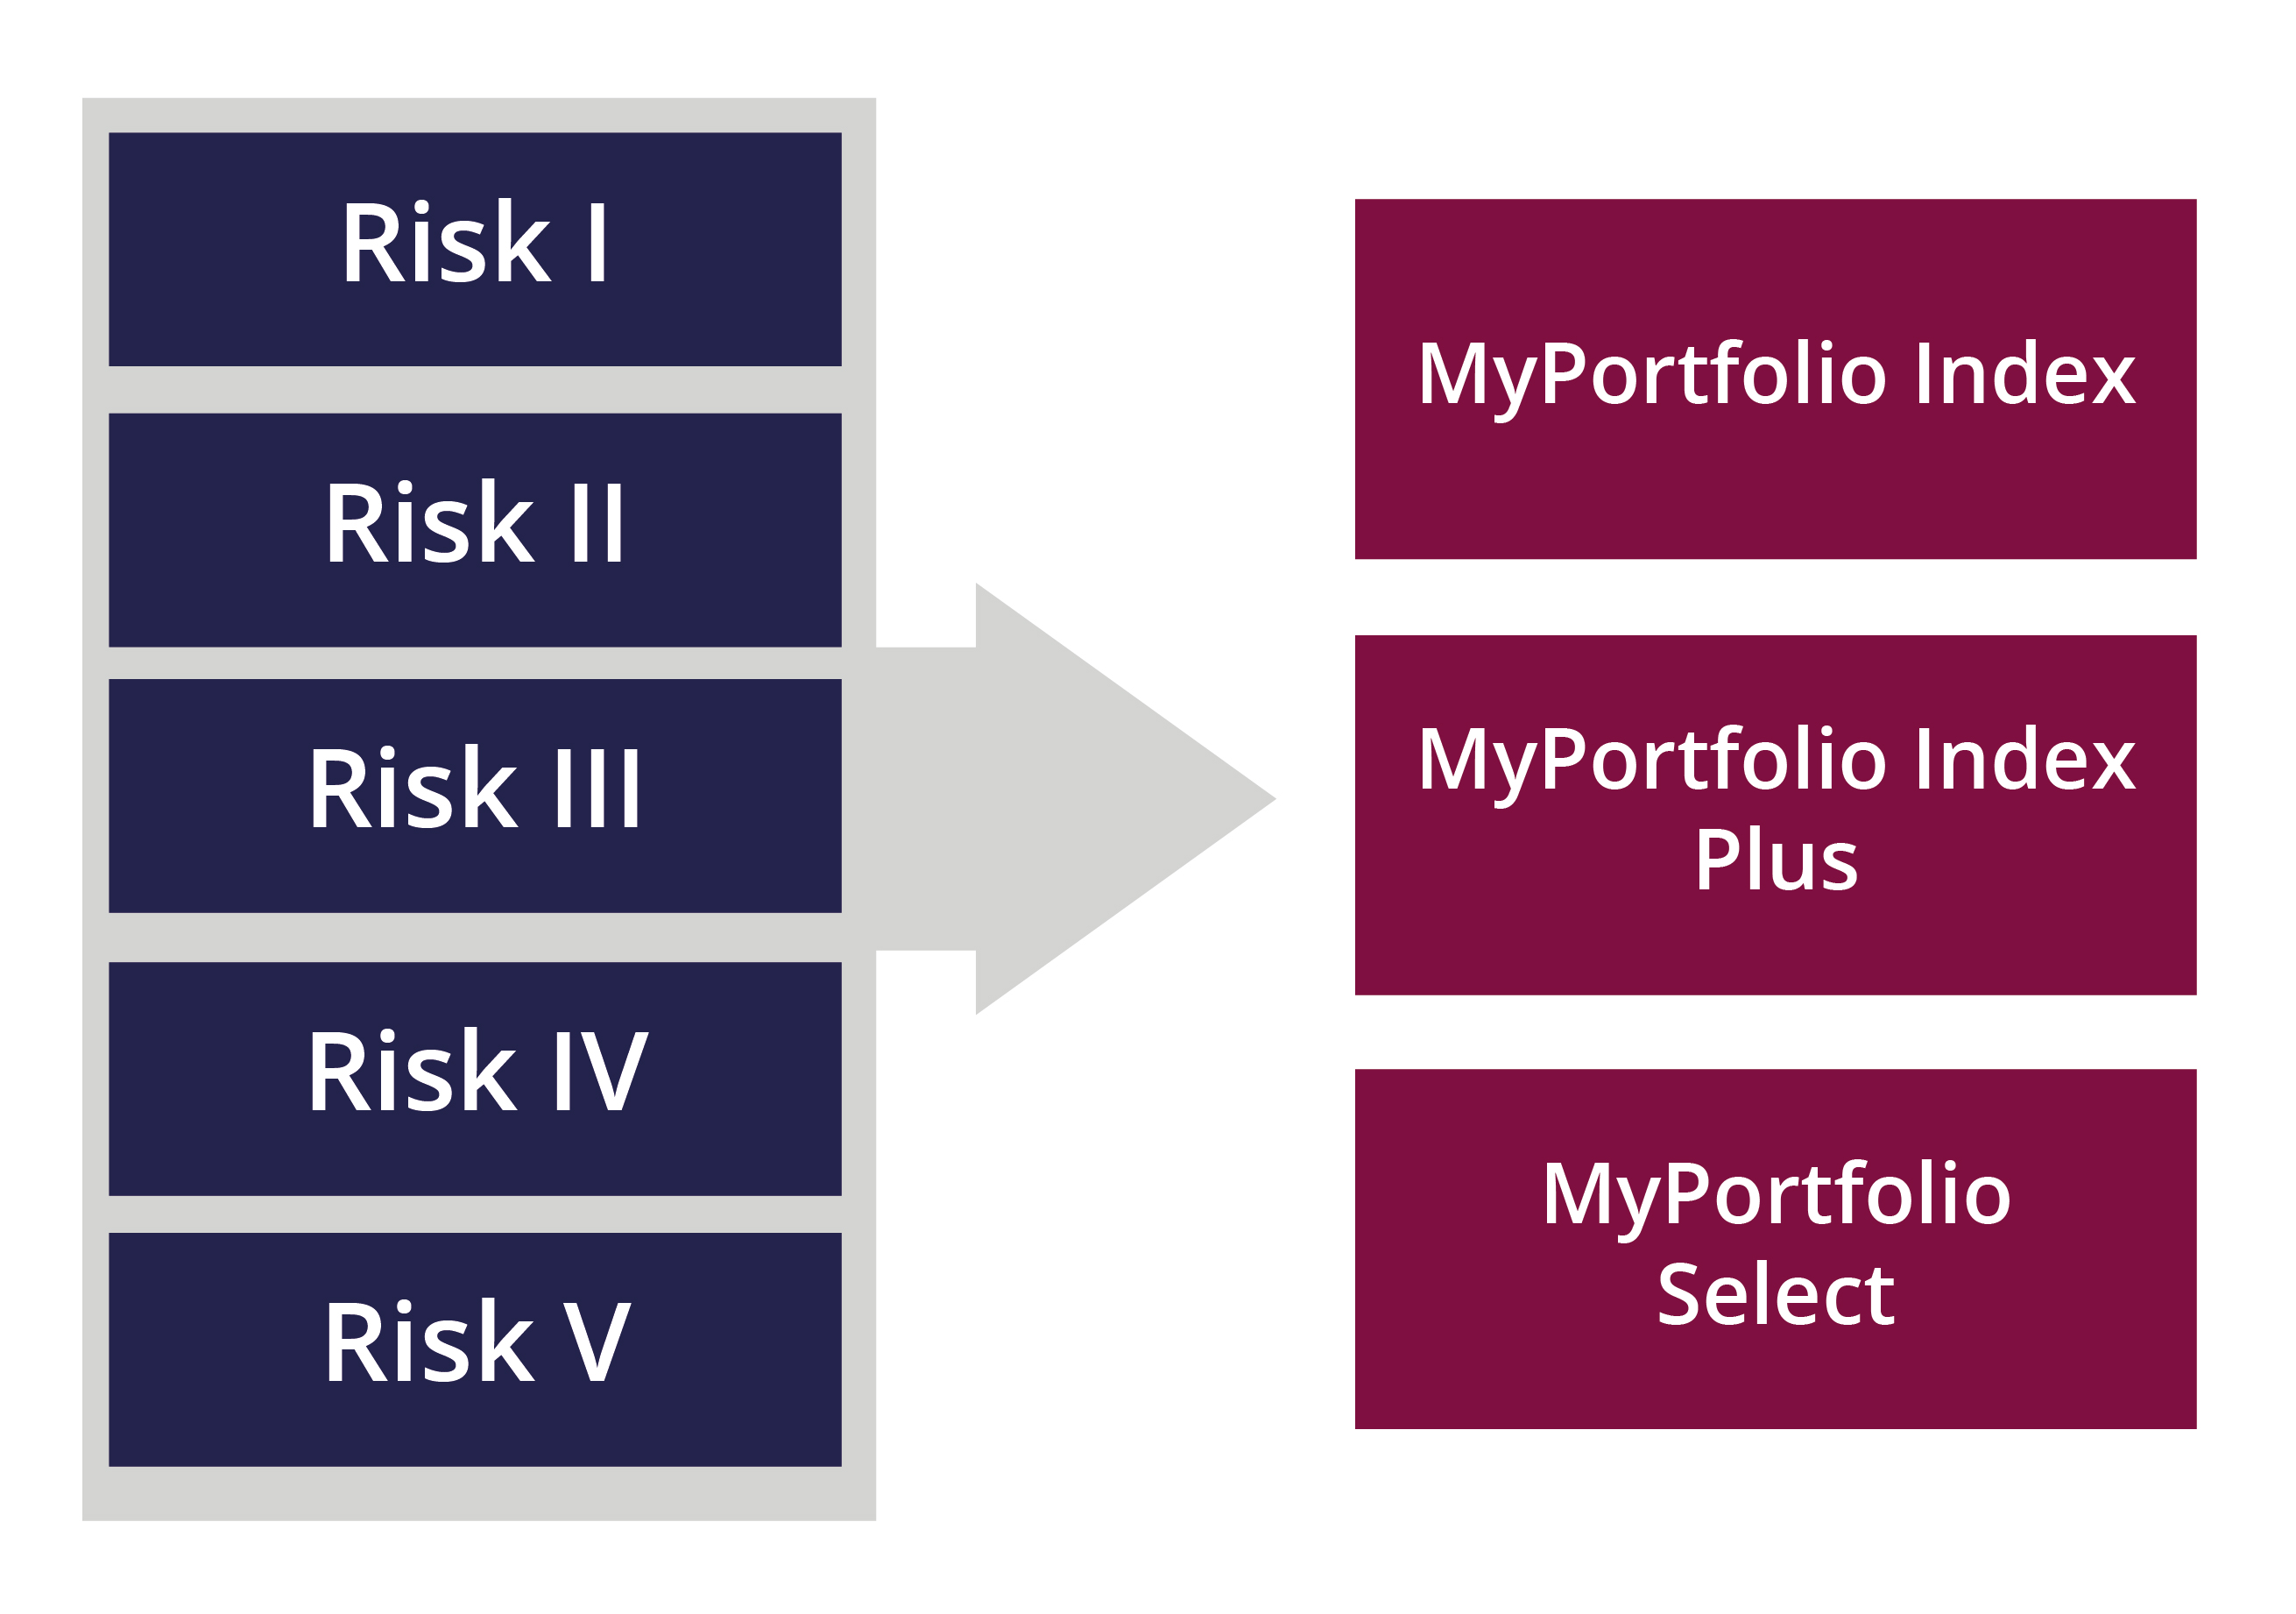 Choice of risk level Risk levels image